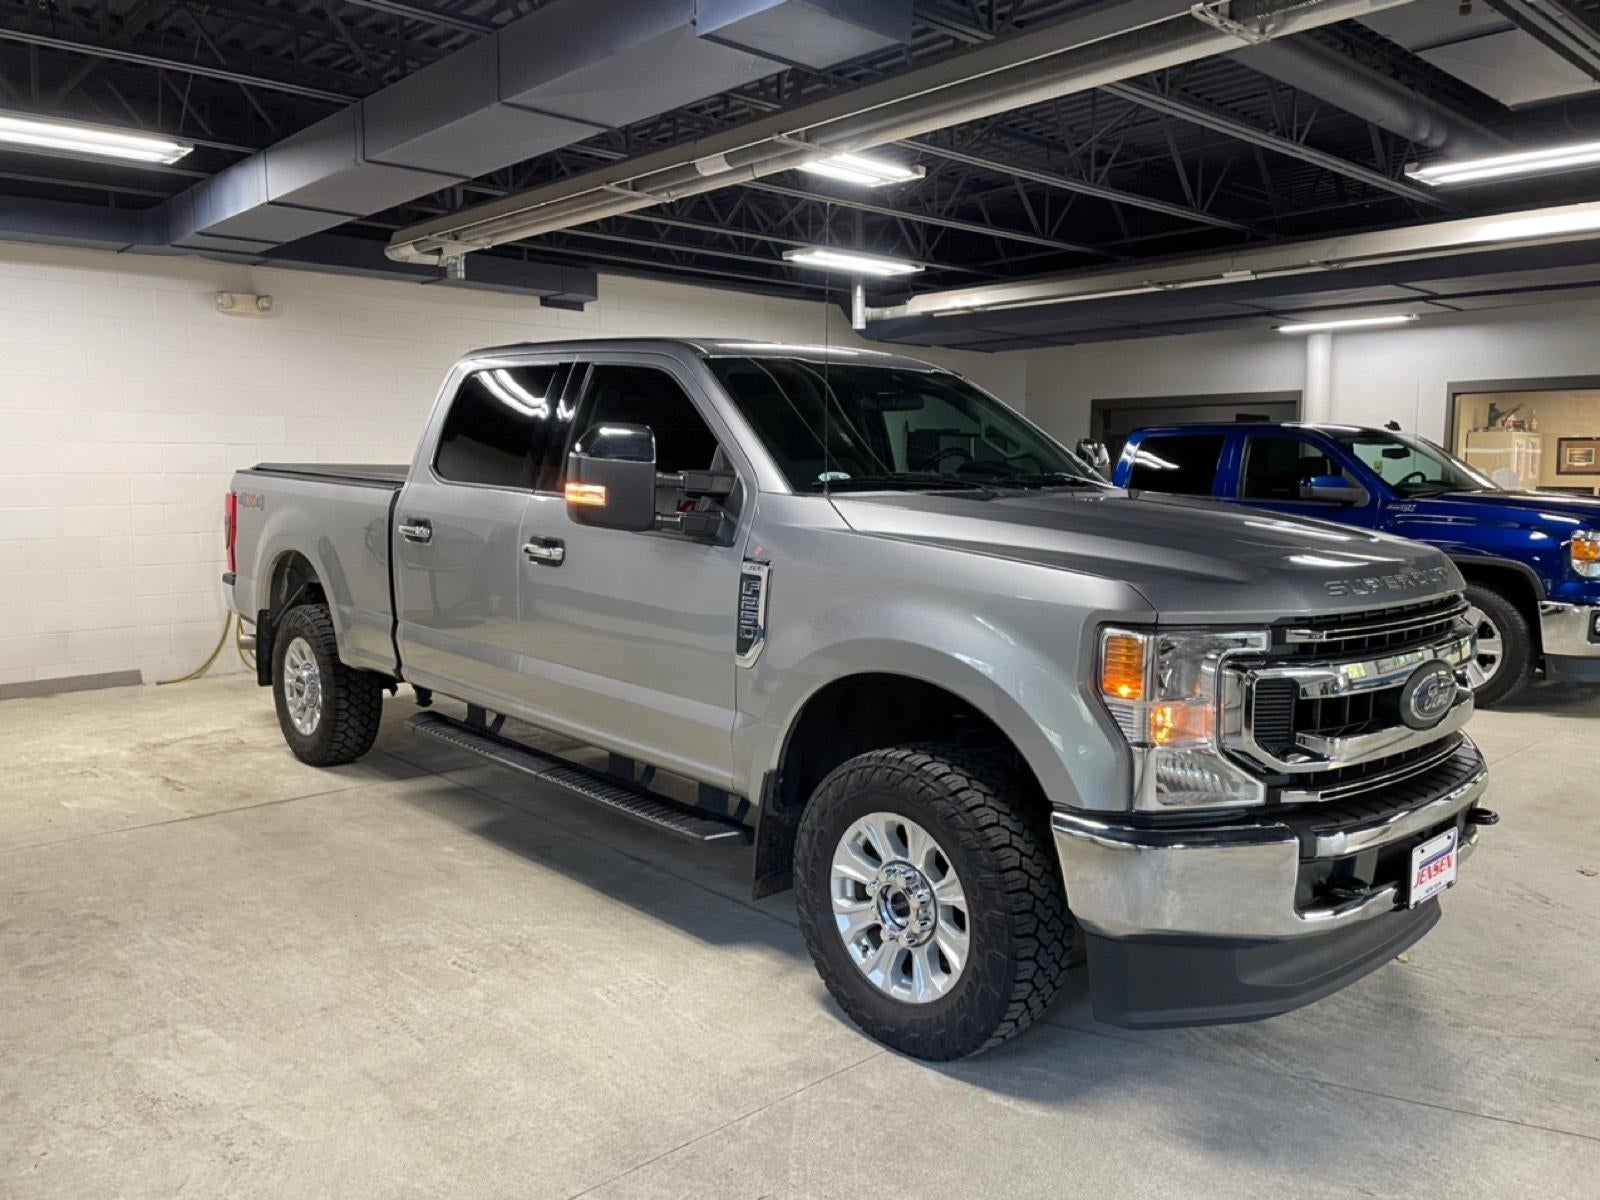 Used 2020 Ford F-250 Super Duty XLT with VIN 1FT7W2B68LED05246 for sale in New Ulm, Minnesota